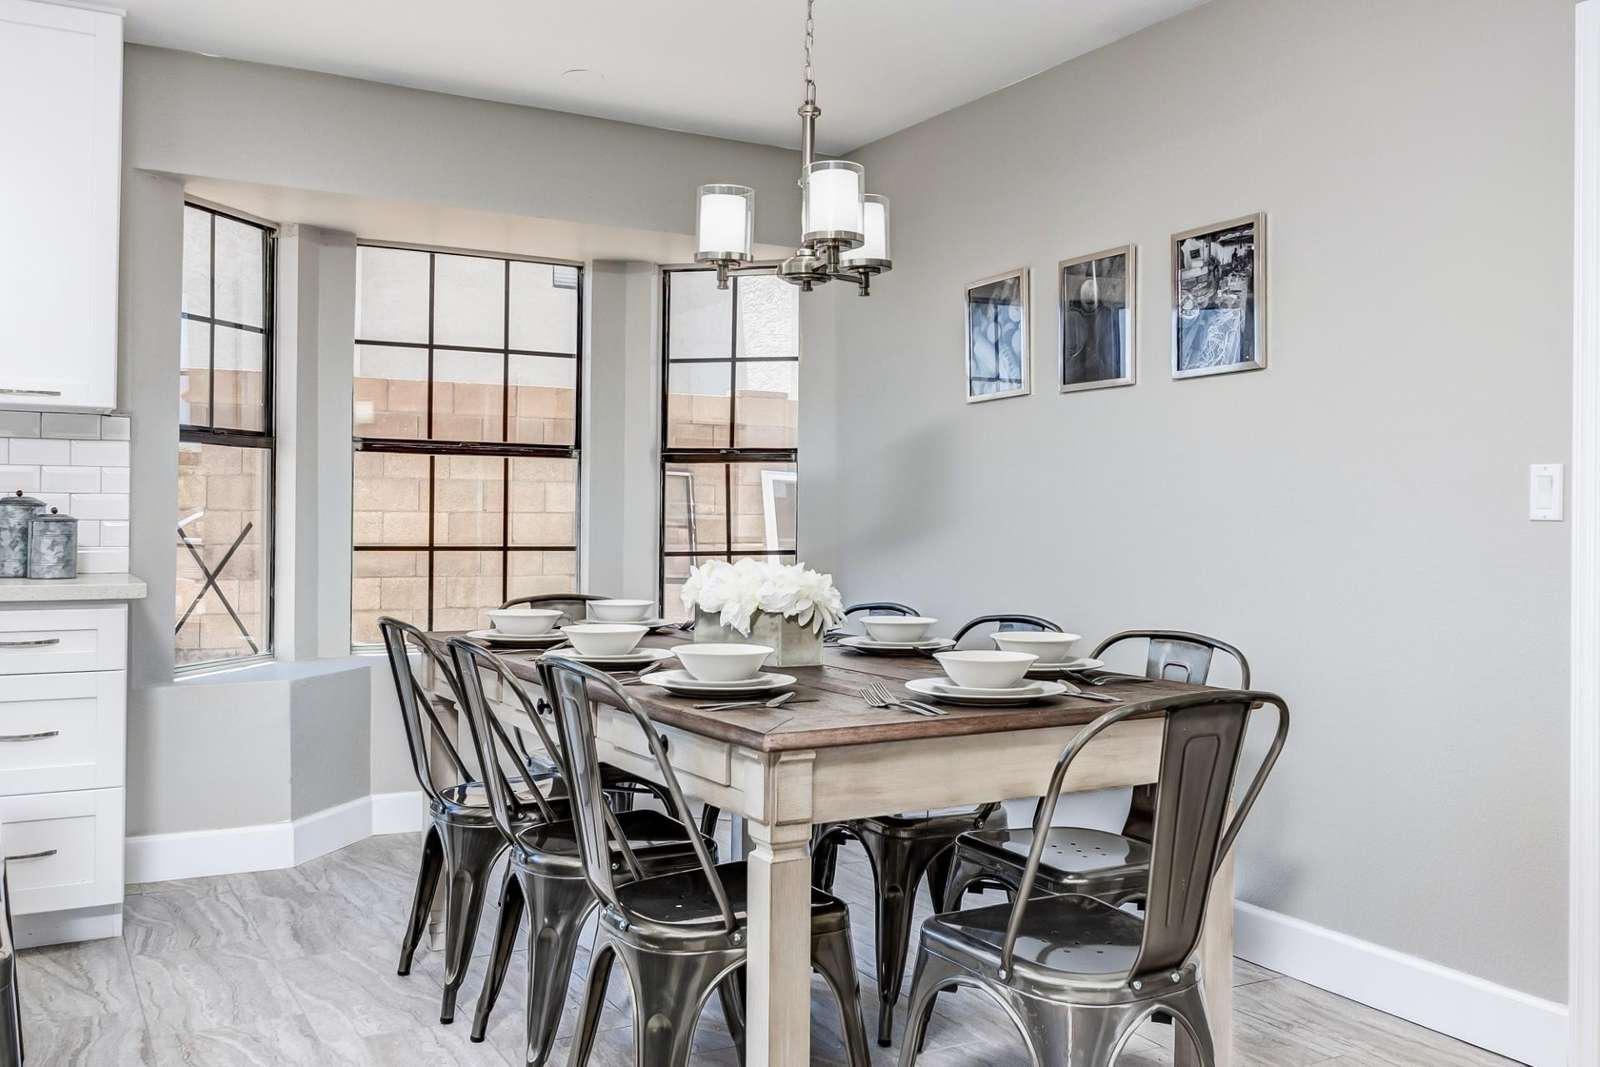 Formal Dining for 8, Plus 4 Barstools.